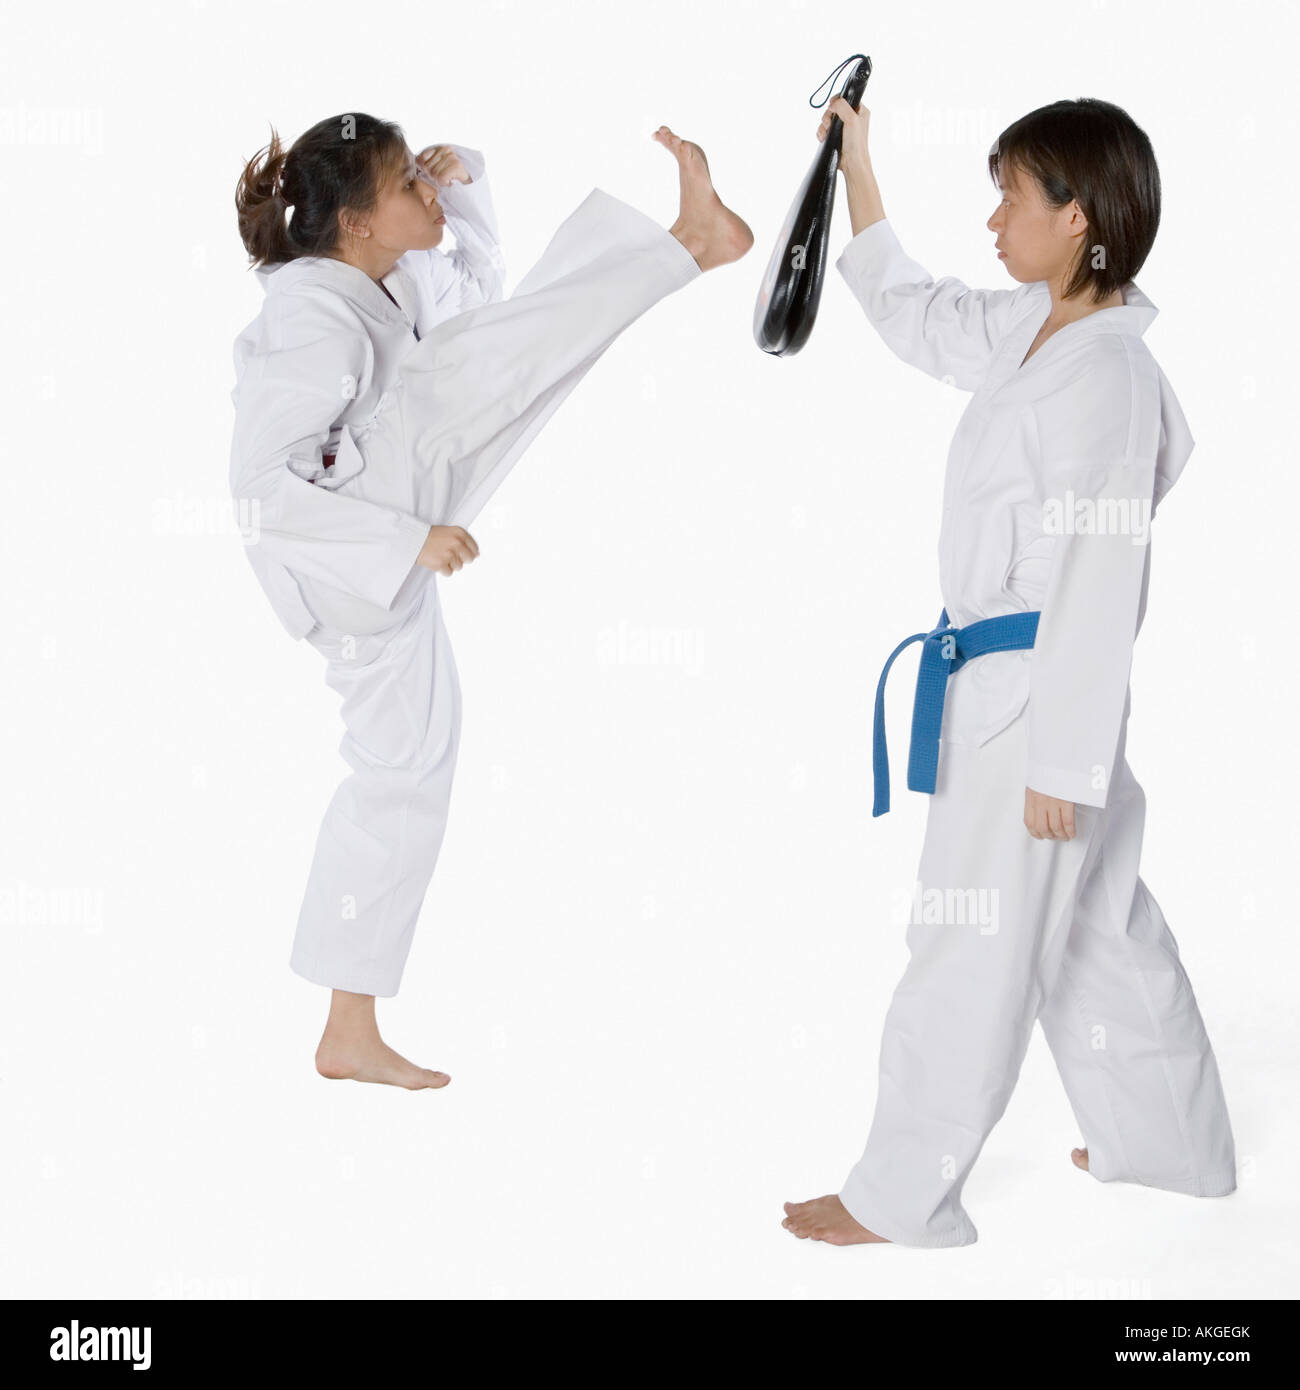 Side profile of two young women practicing karate - Stock Image